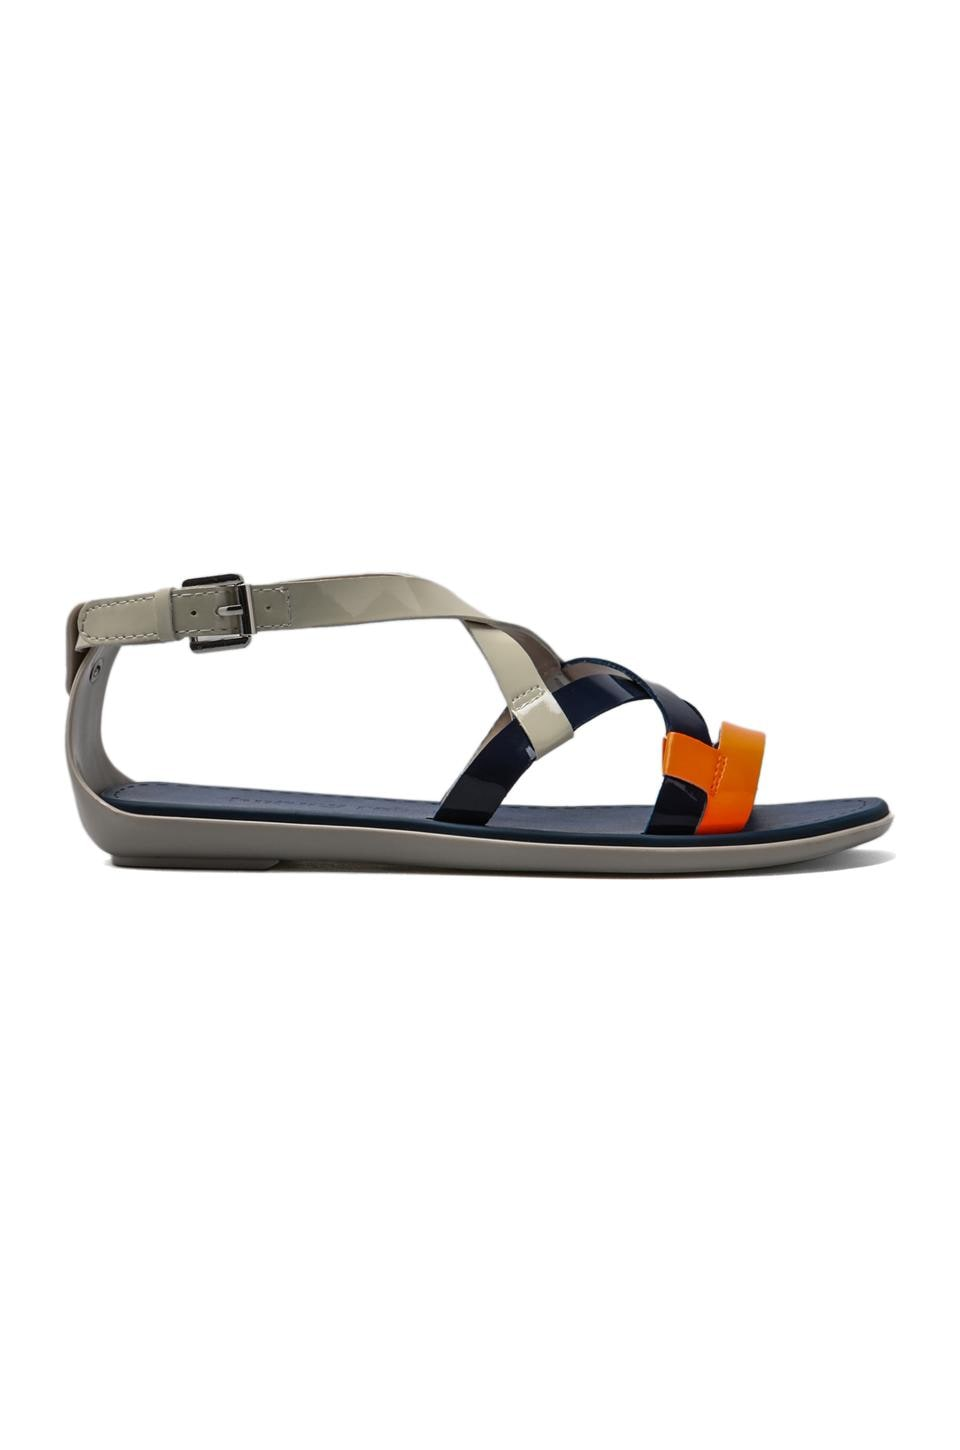 Luxury Rebel Swing Sandal in Deep Blue/Latte